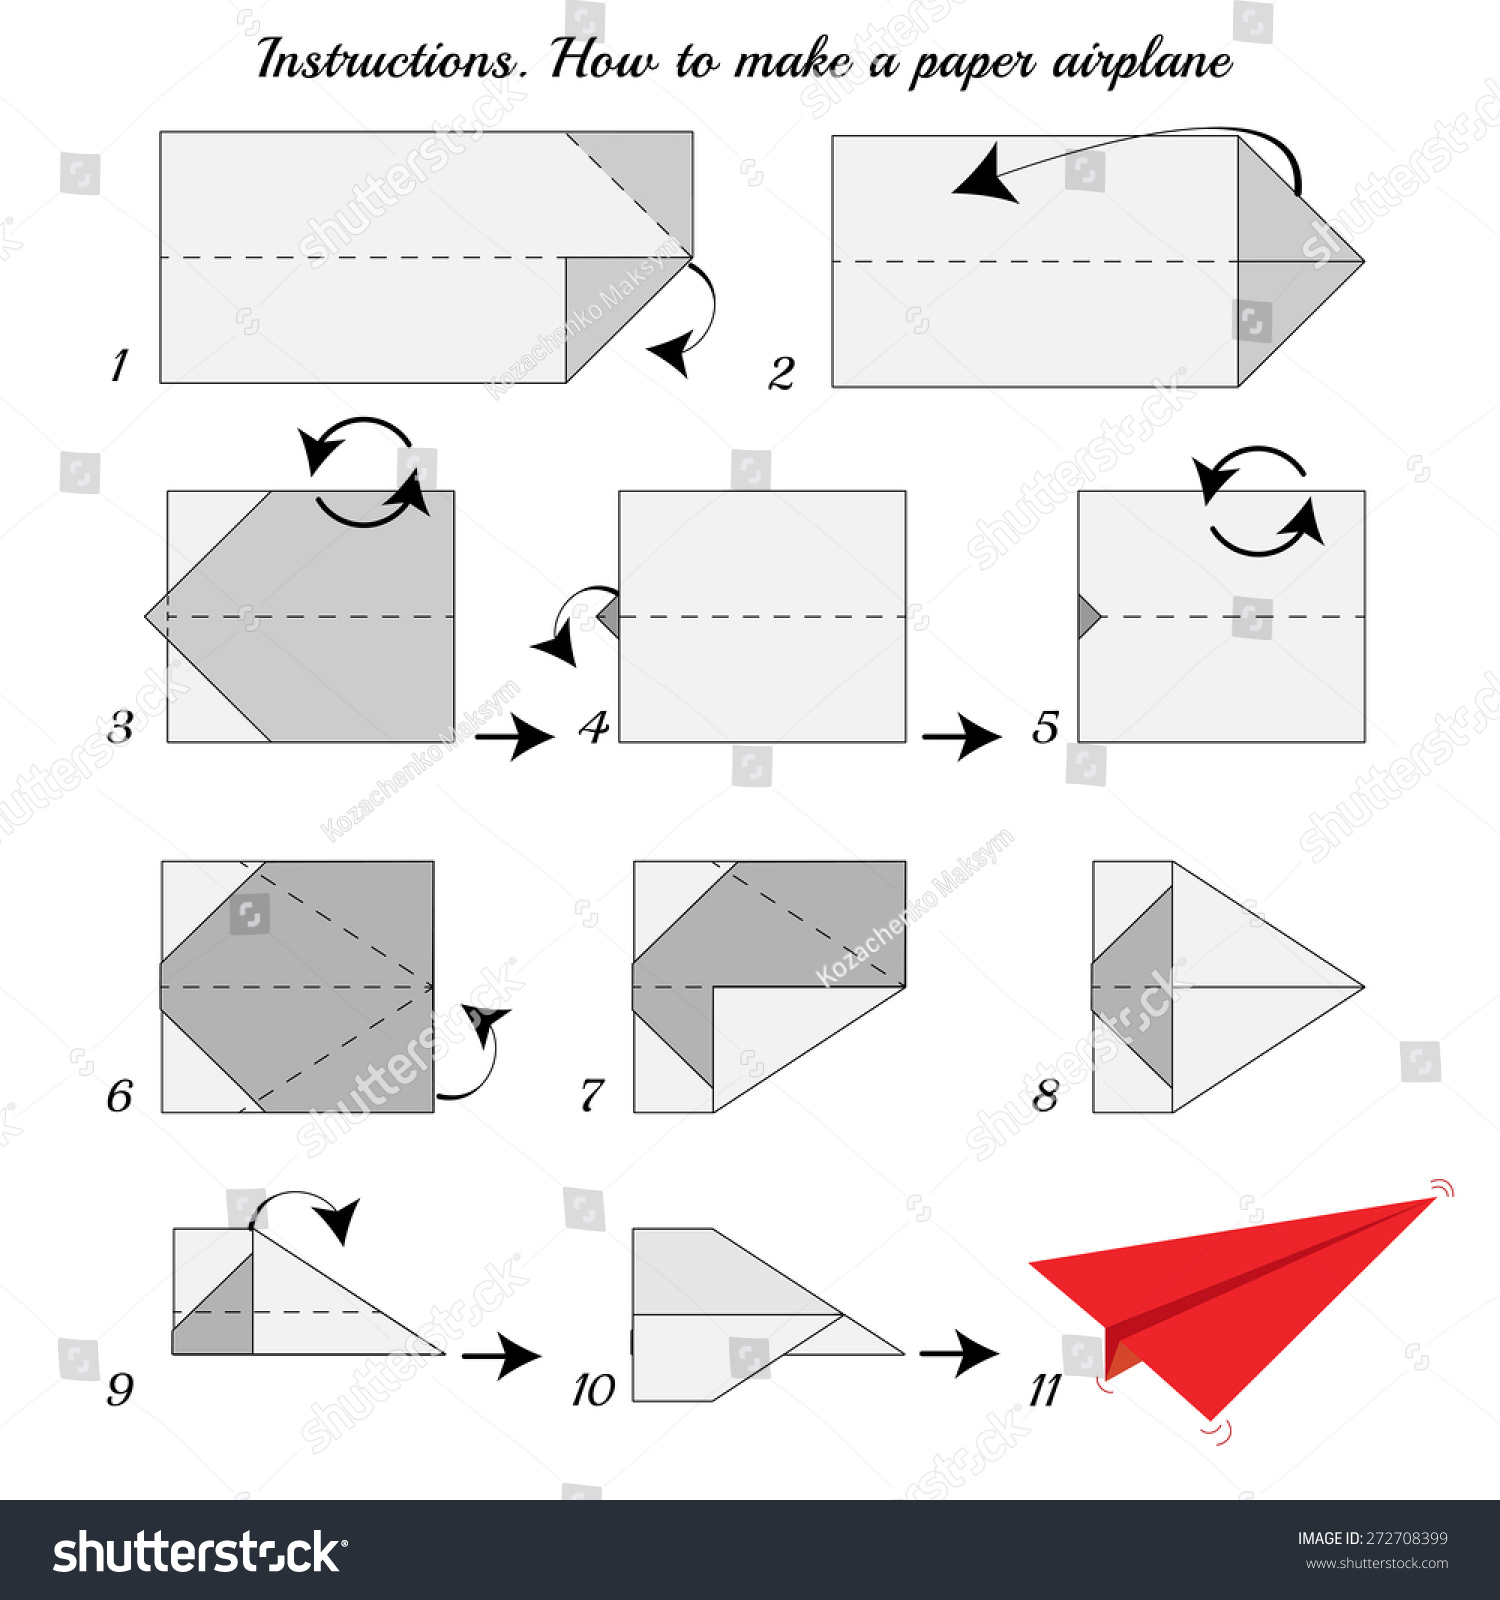 Instructions how to make paper airplane paper plane tutorial step by